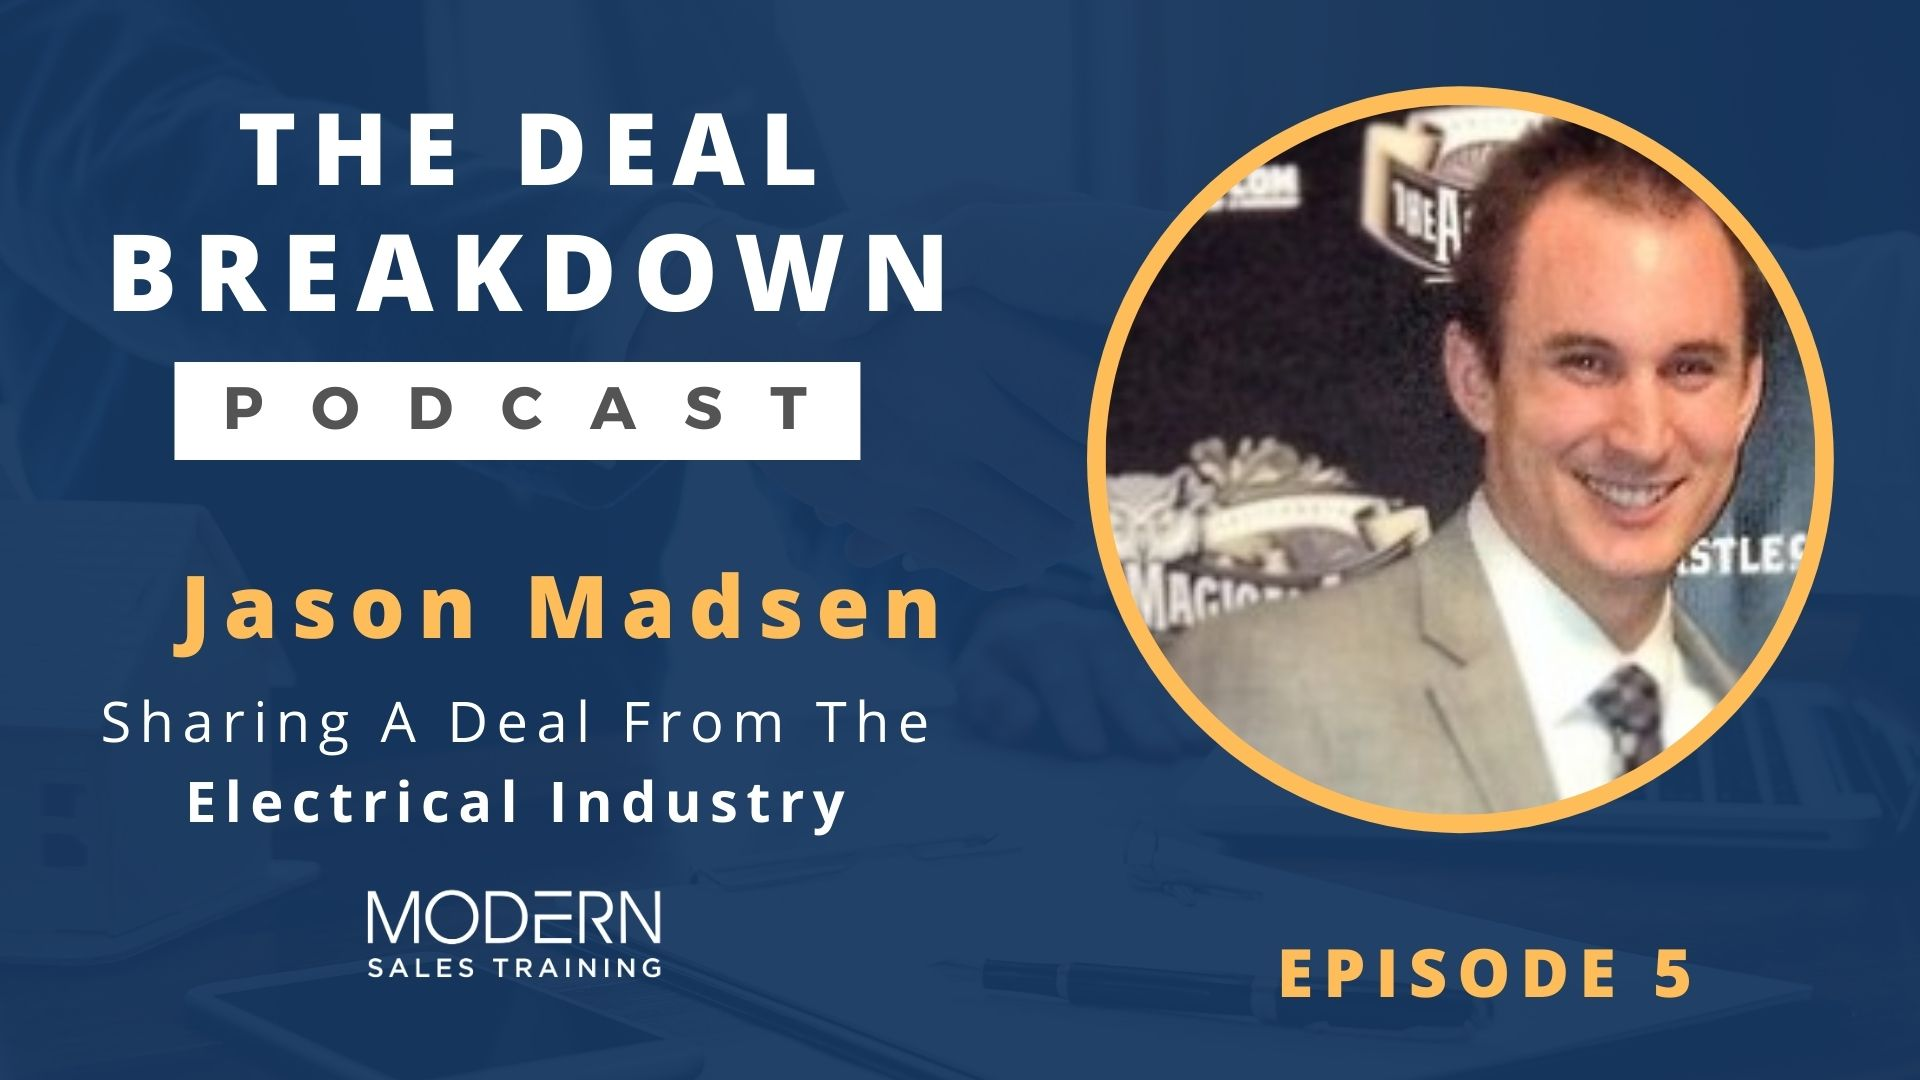 The-Deal-Breakdown-Podcast-Modern-Sales-Training-Jason-Madsen